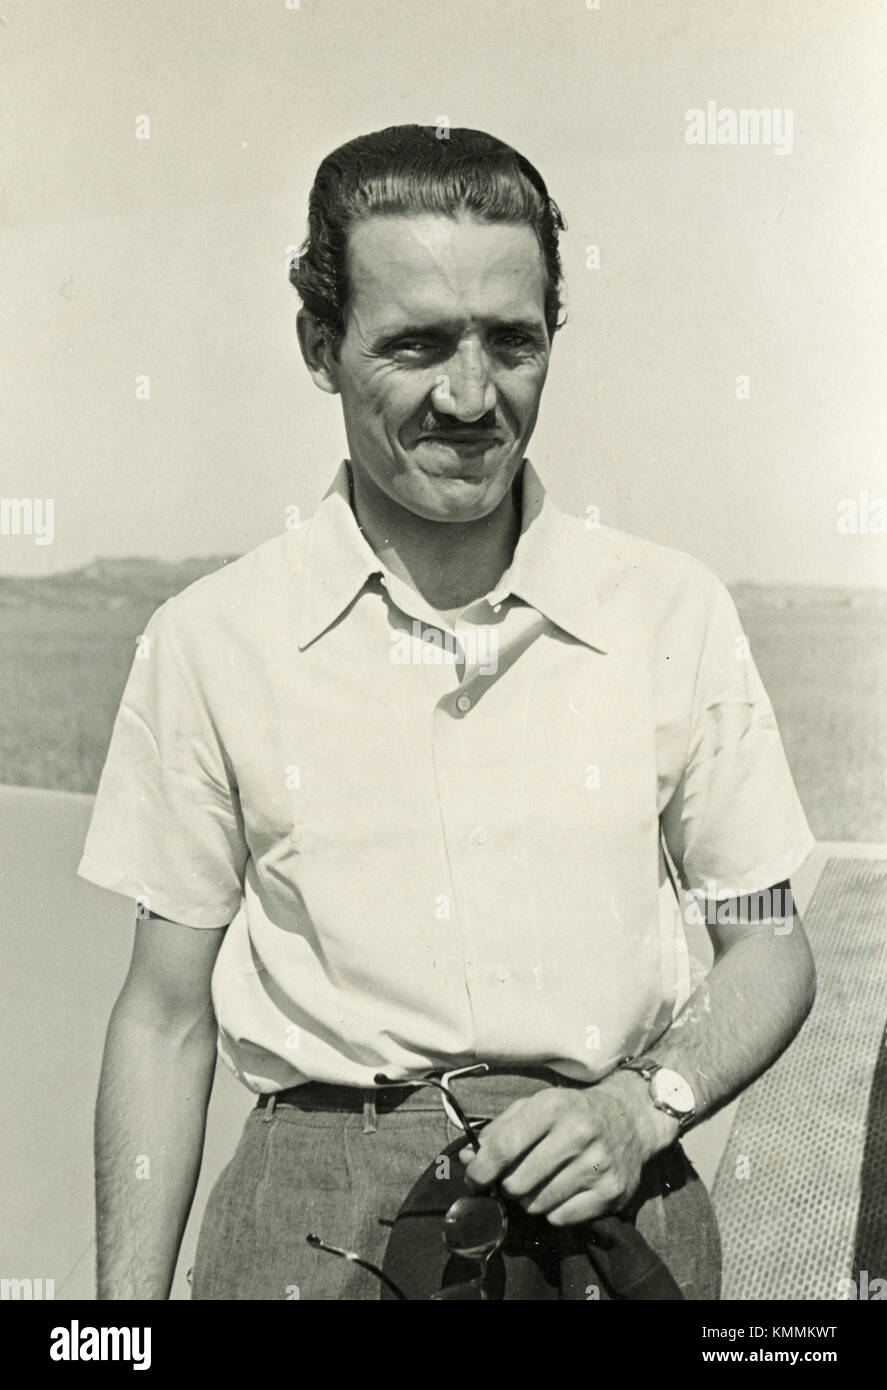 Man with shirt, Italy 1930s - Stock Image